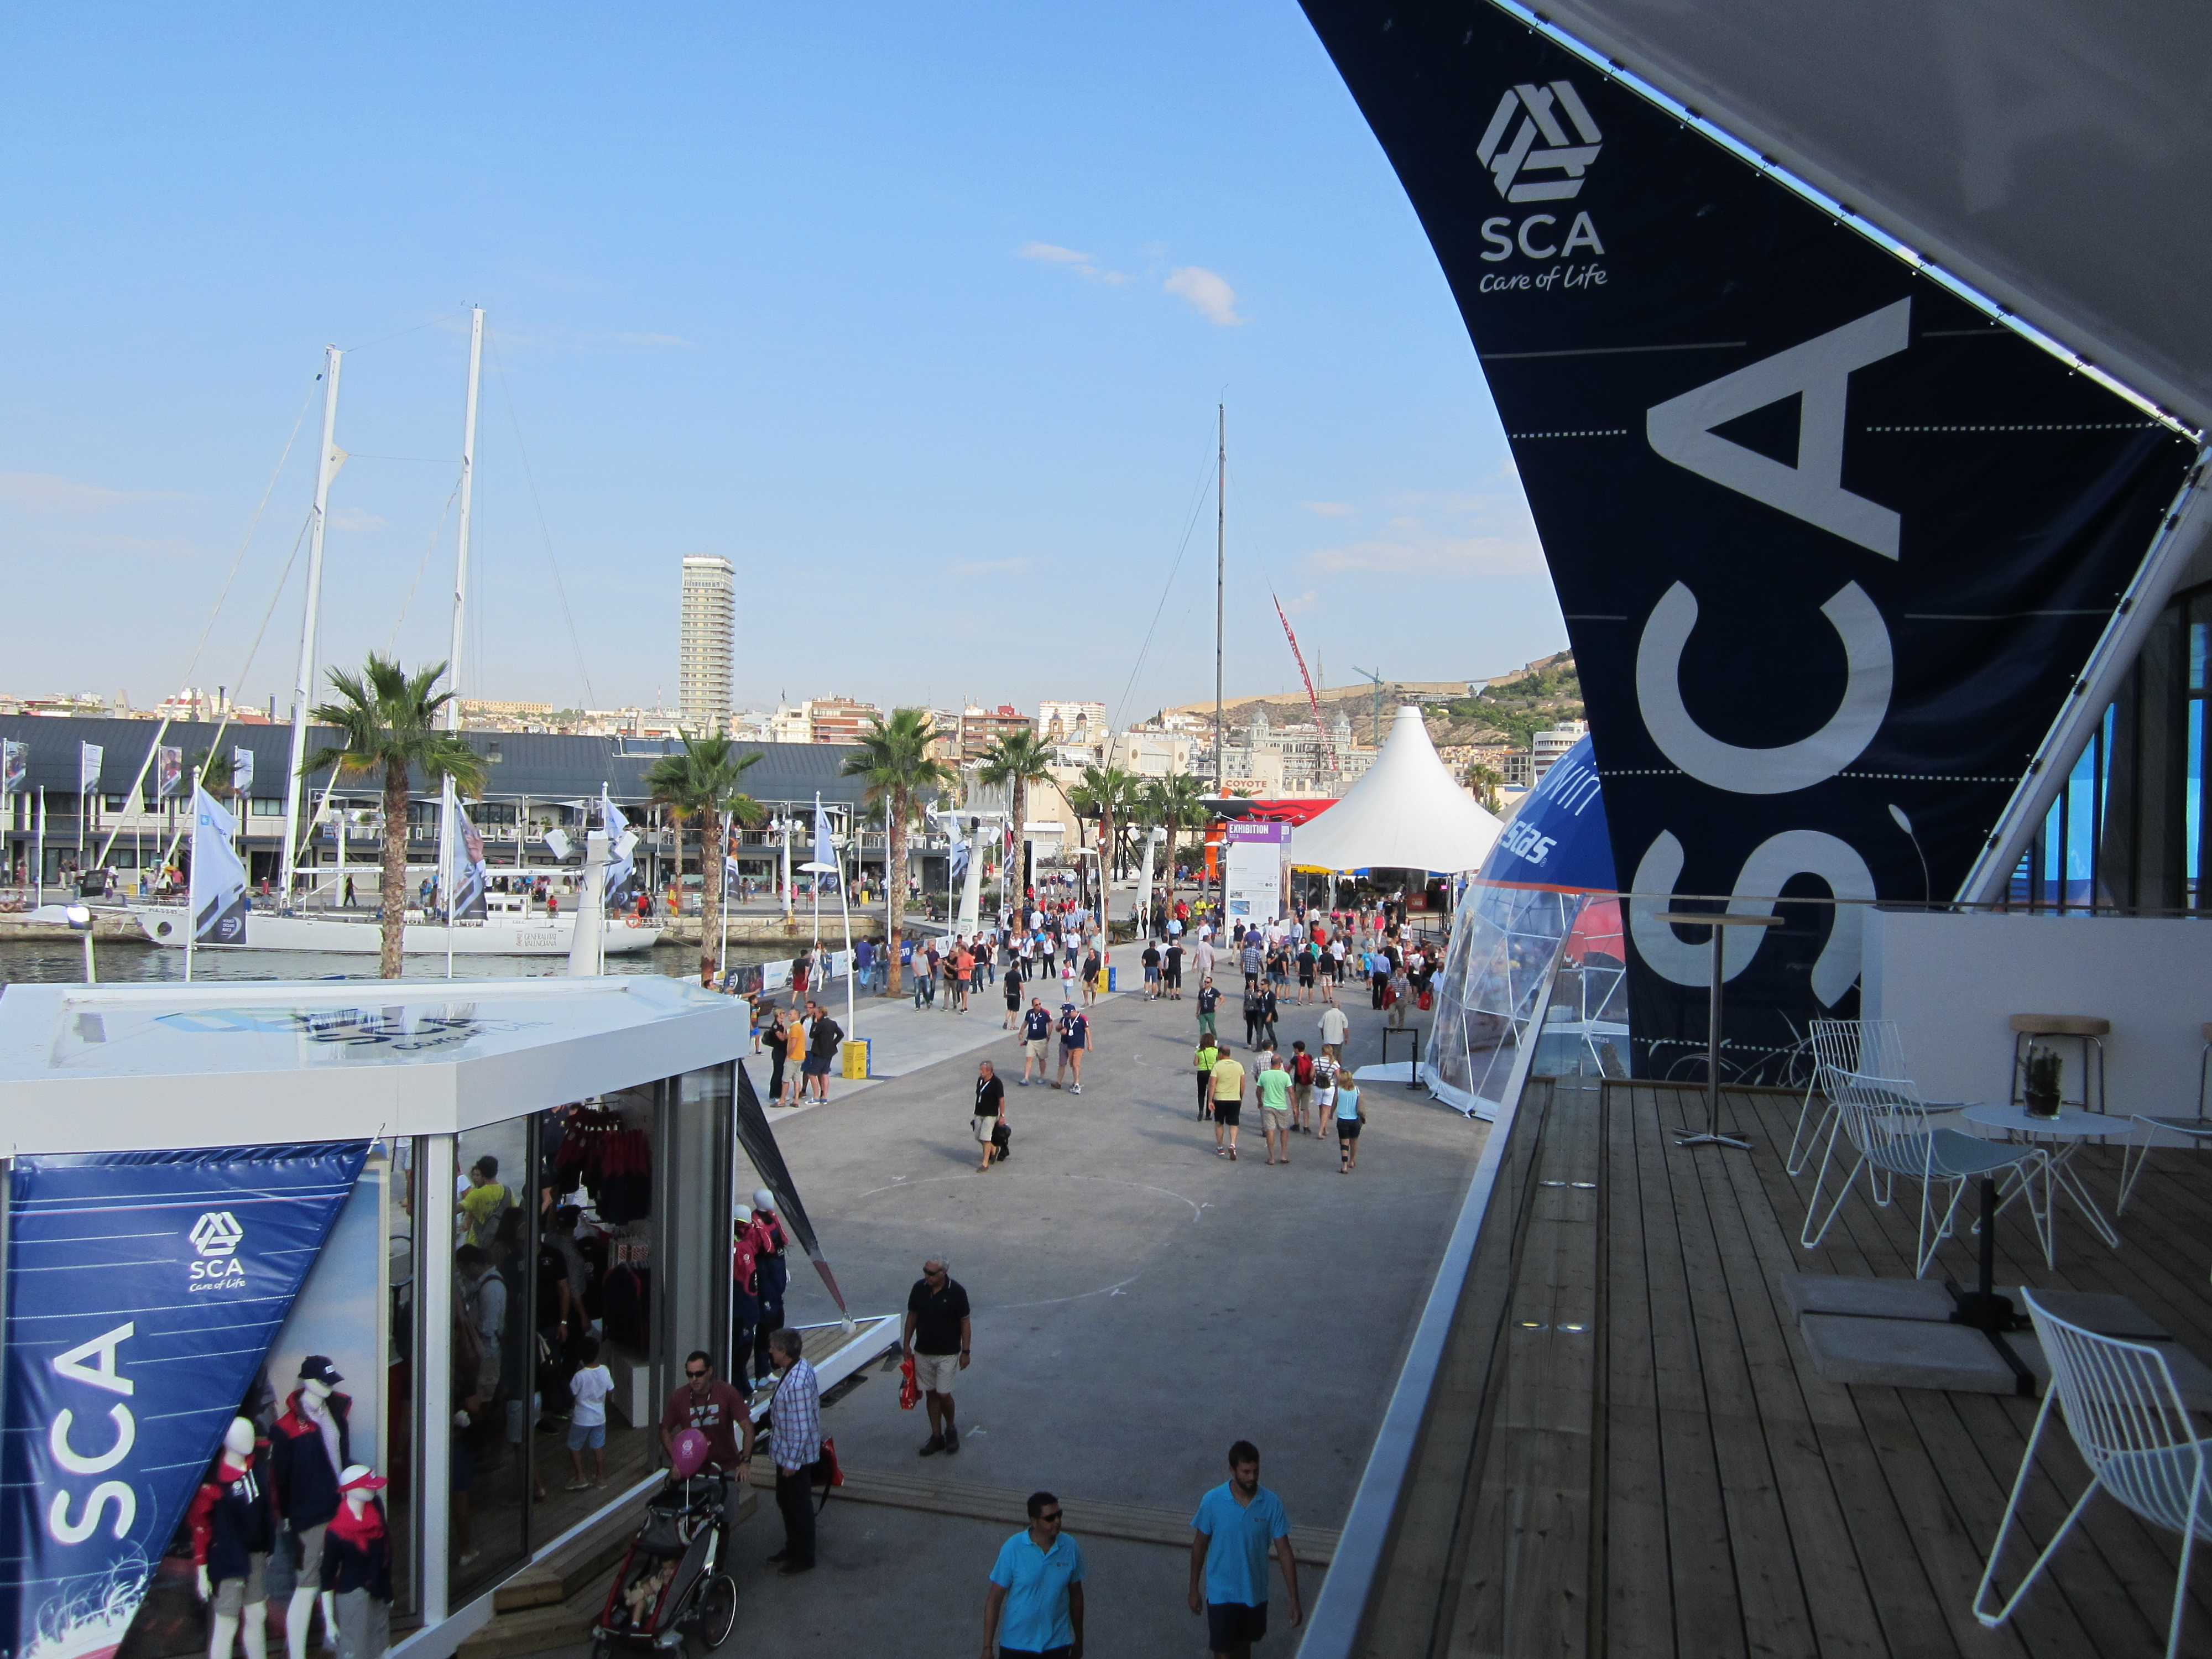 Sponsoring activation of SCA TORK 2014 in Alicante